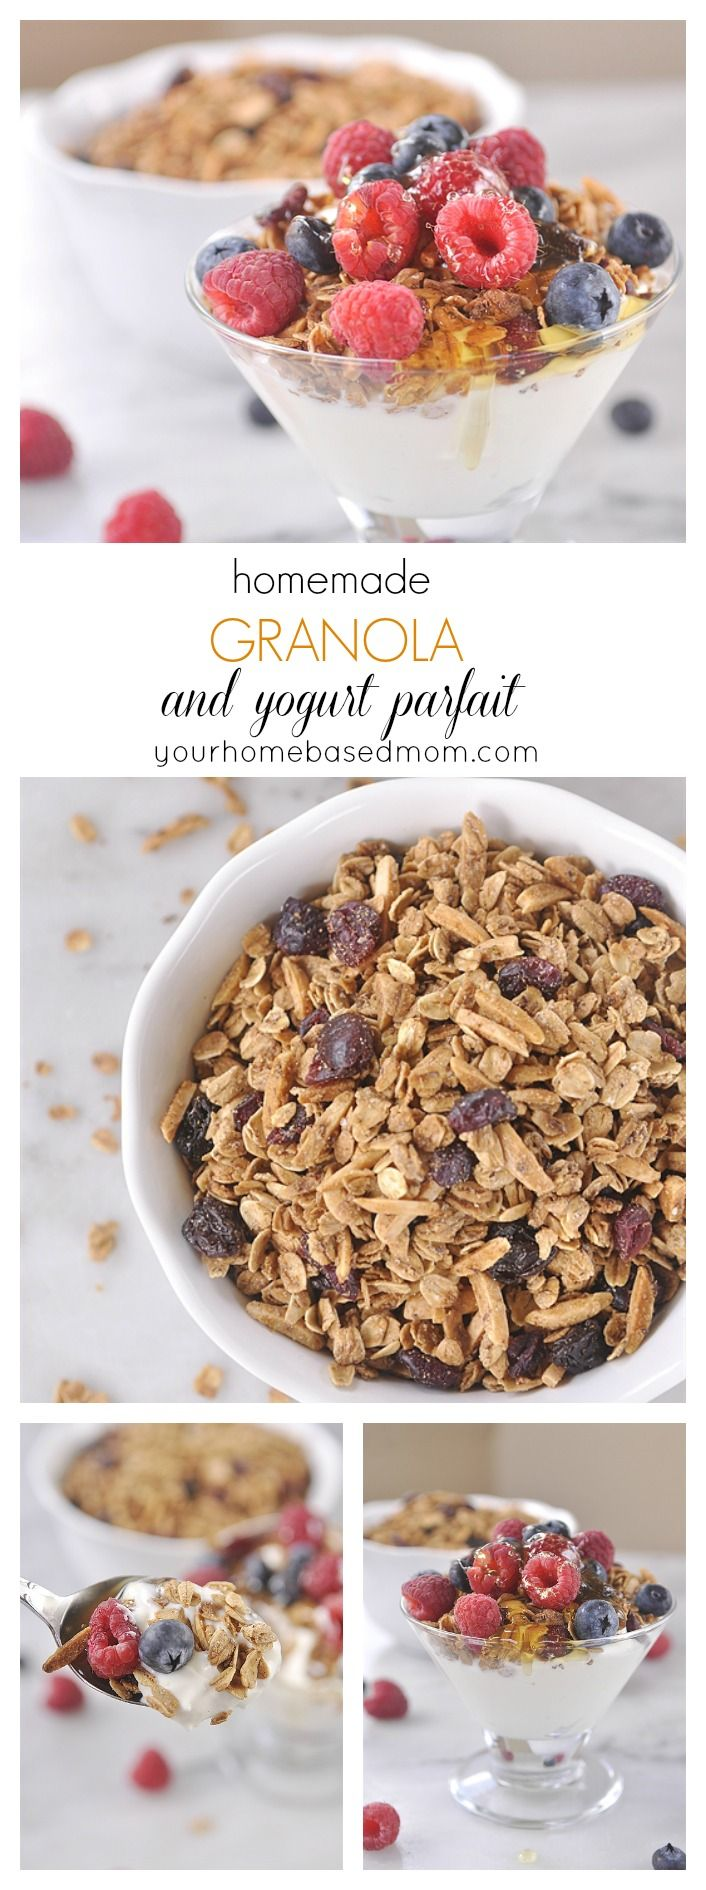 Homemade Granola Recipe and Yogurt Parfaits for breakfast!  This easy to follow recipe makes a delicious snack or put it on top of some yogurt with fruit and you've got breakfast!